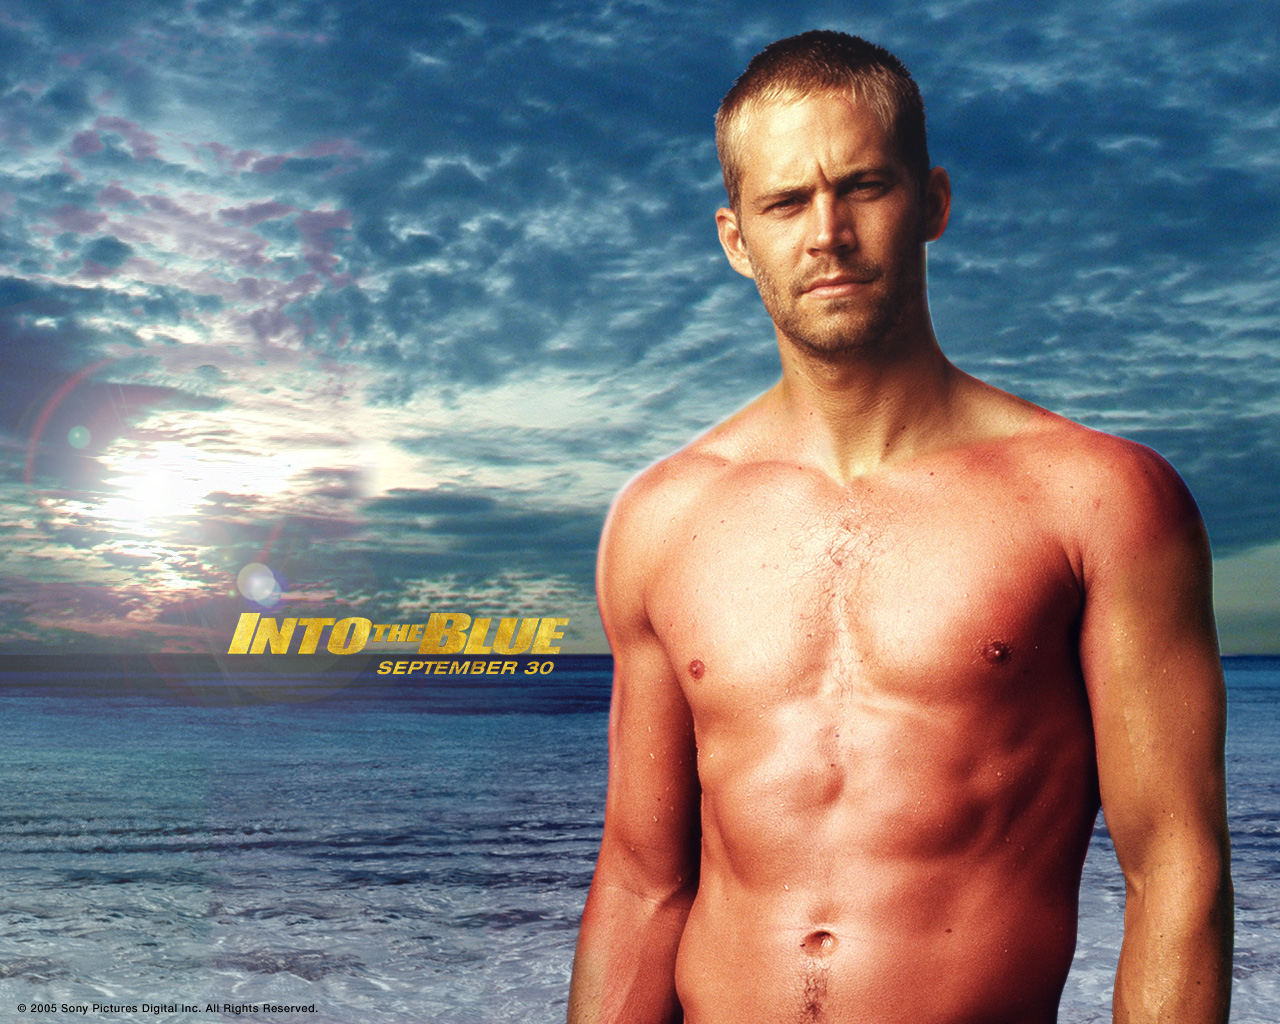 http://3.bp.blogspot.com/-9x1YhL5AnG0/Tx0s8i36xlI/AAAAAAAABvY/FP1E1lu1jbk/s1600/Paul_Walker_in_Into_the_Blue_Wallpaper_5_1280.jpg